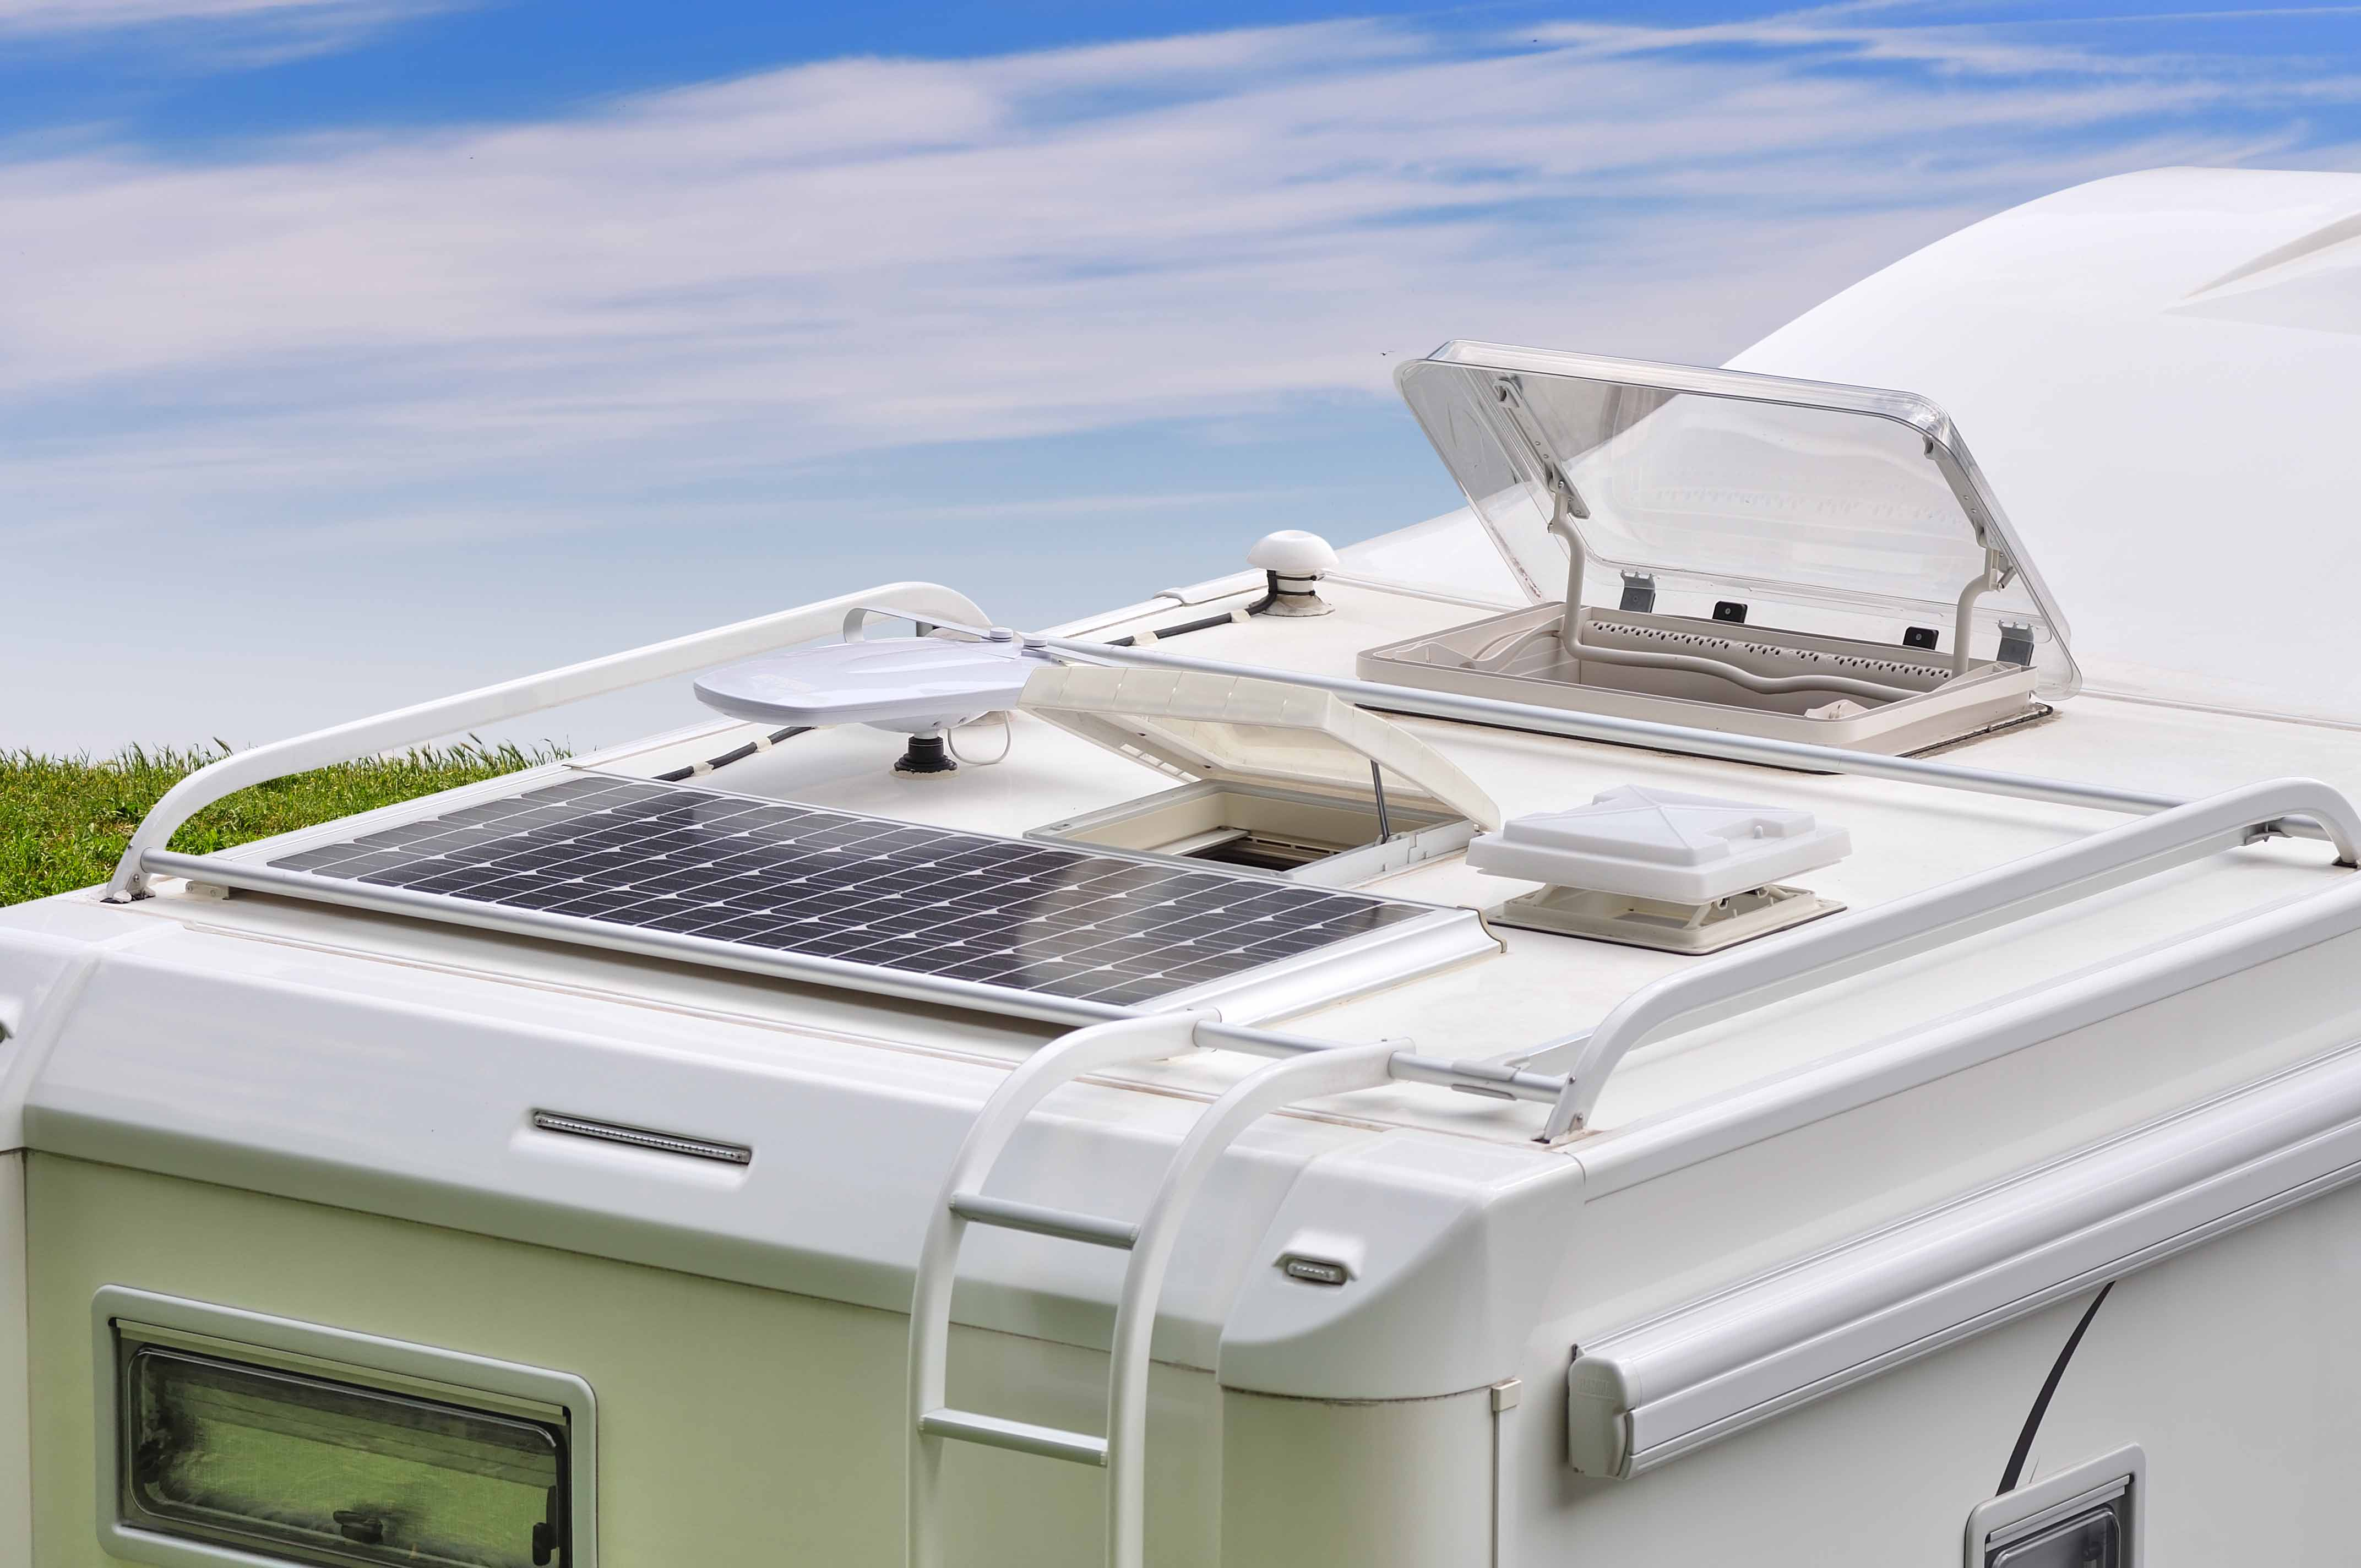 sunworks motorhome solar panels boat solar panels and. Black Bedroom Furniture Sets. Home Design Ideas